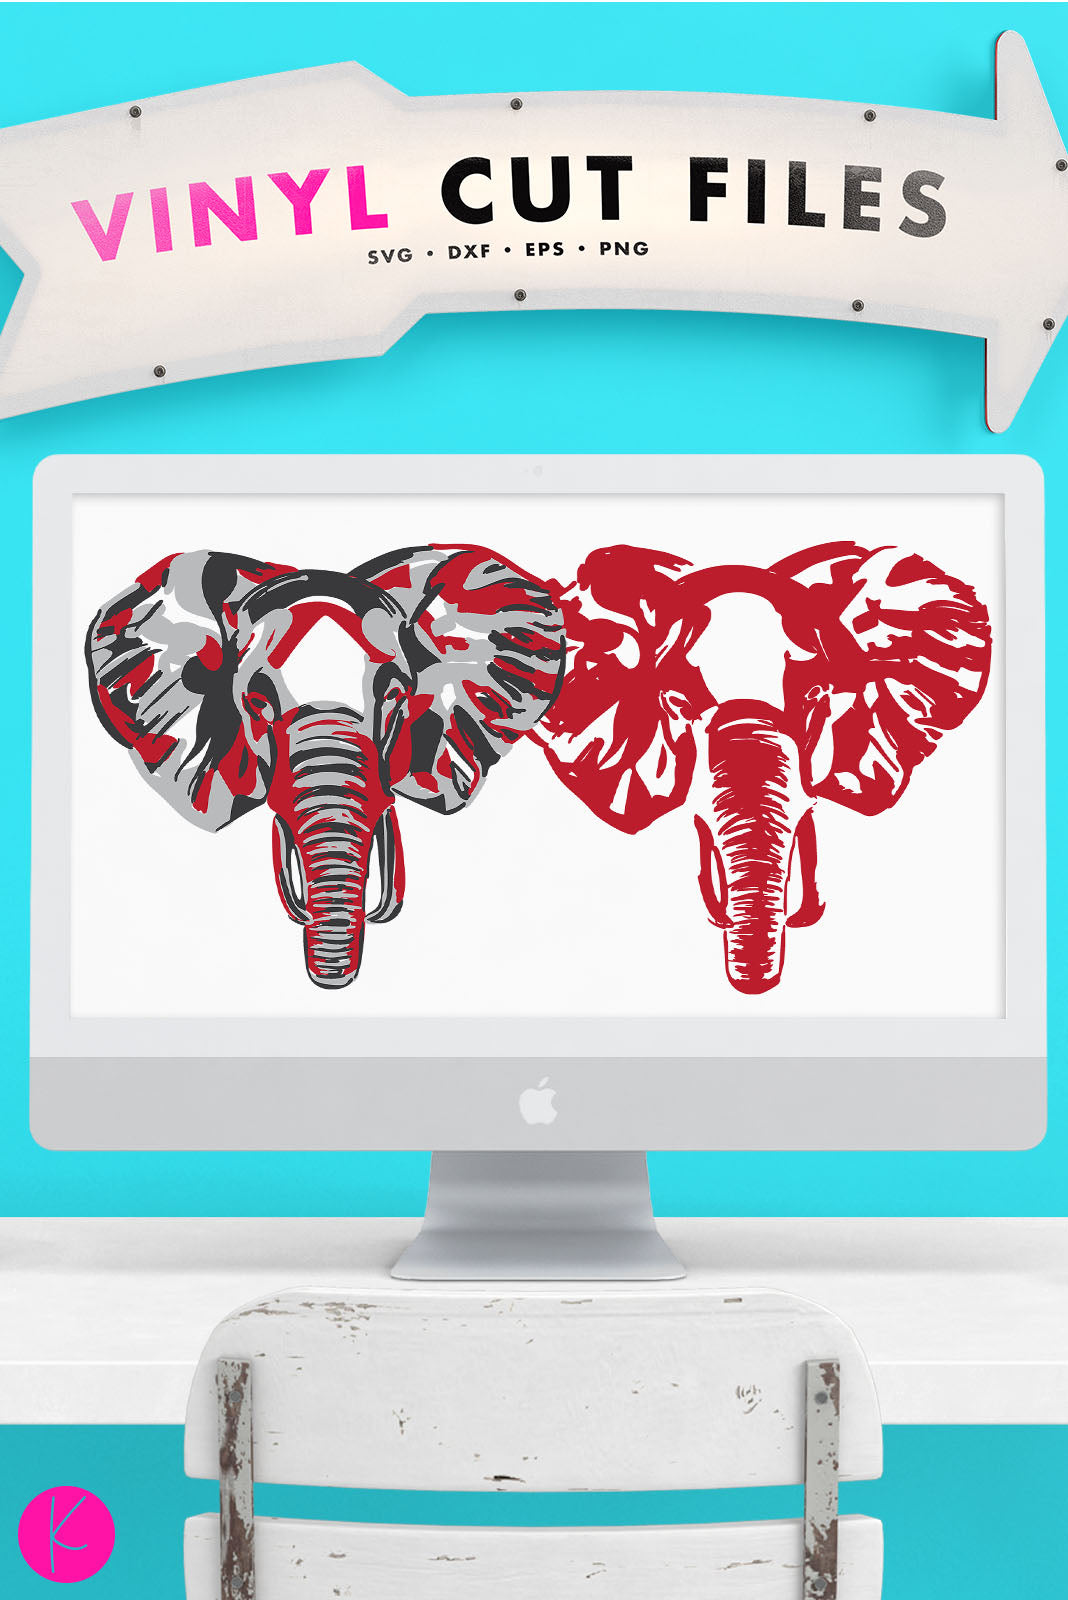 Elephant Head | SVG DXF EPS PNG Cut Files Digitally Painted Elephant Head in Three or One Layer for Shirts and Decor | SVG DXF EPS PNG Cut Files  Painted elephant adapted for use with vinyl for elephant lover shirts